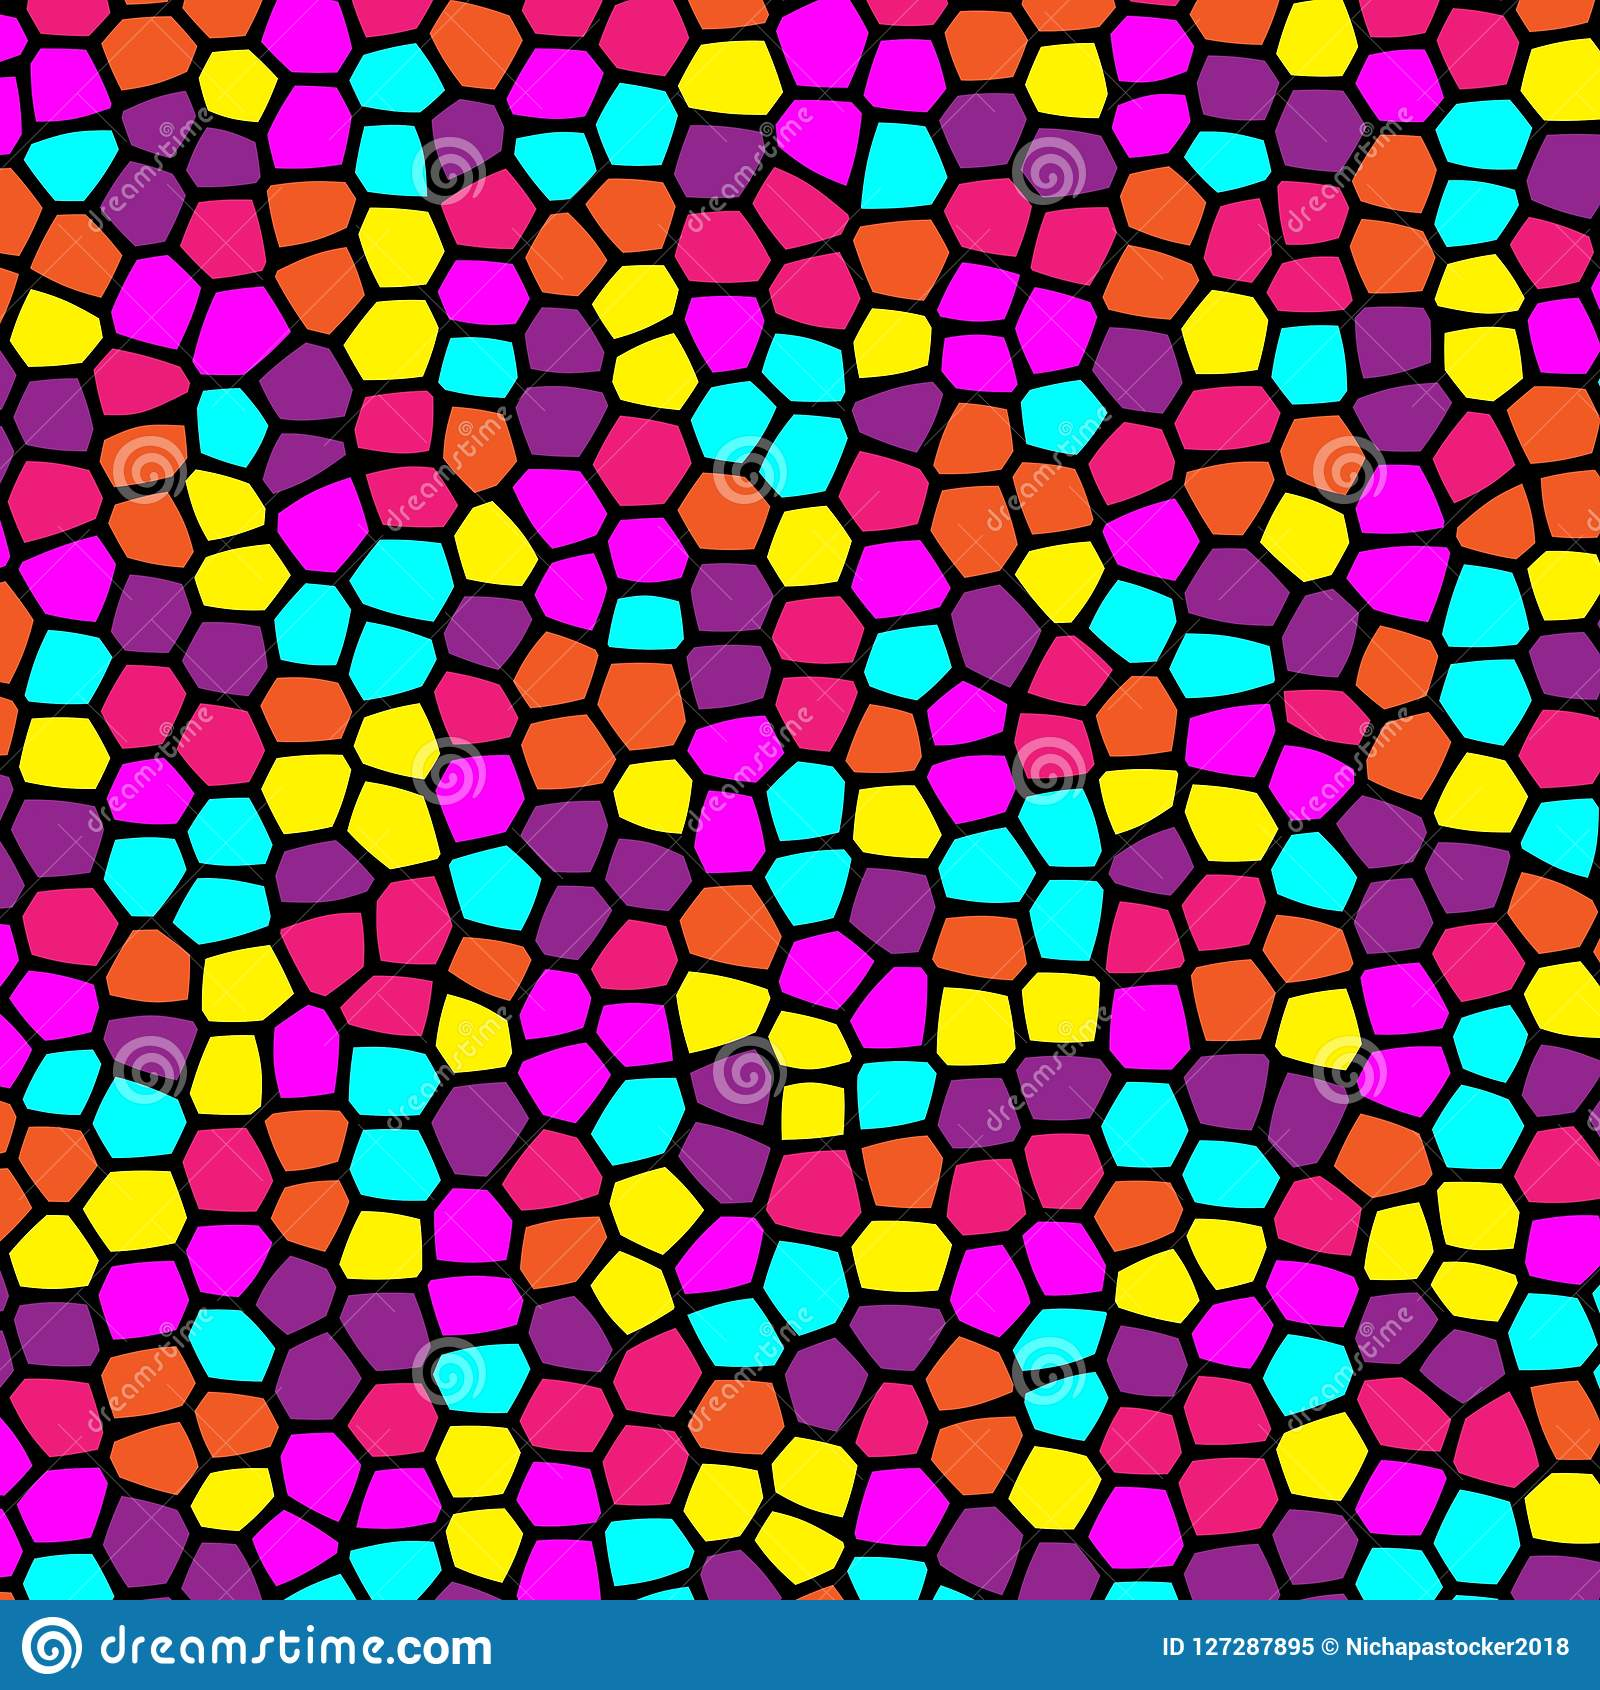 Colorful Retro Pattern Of Stained Glass Geometric Shapes